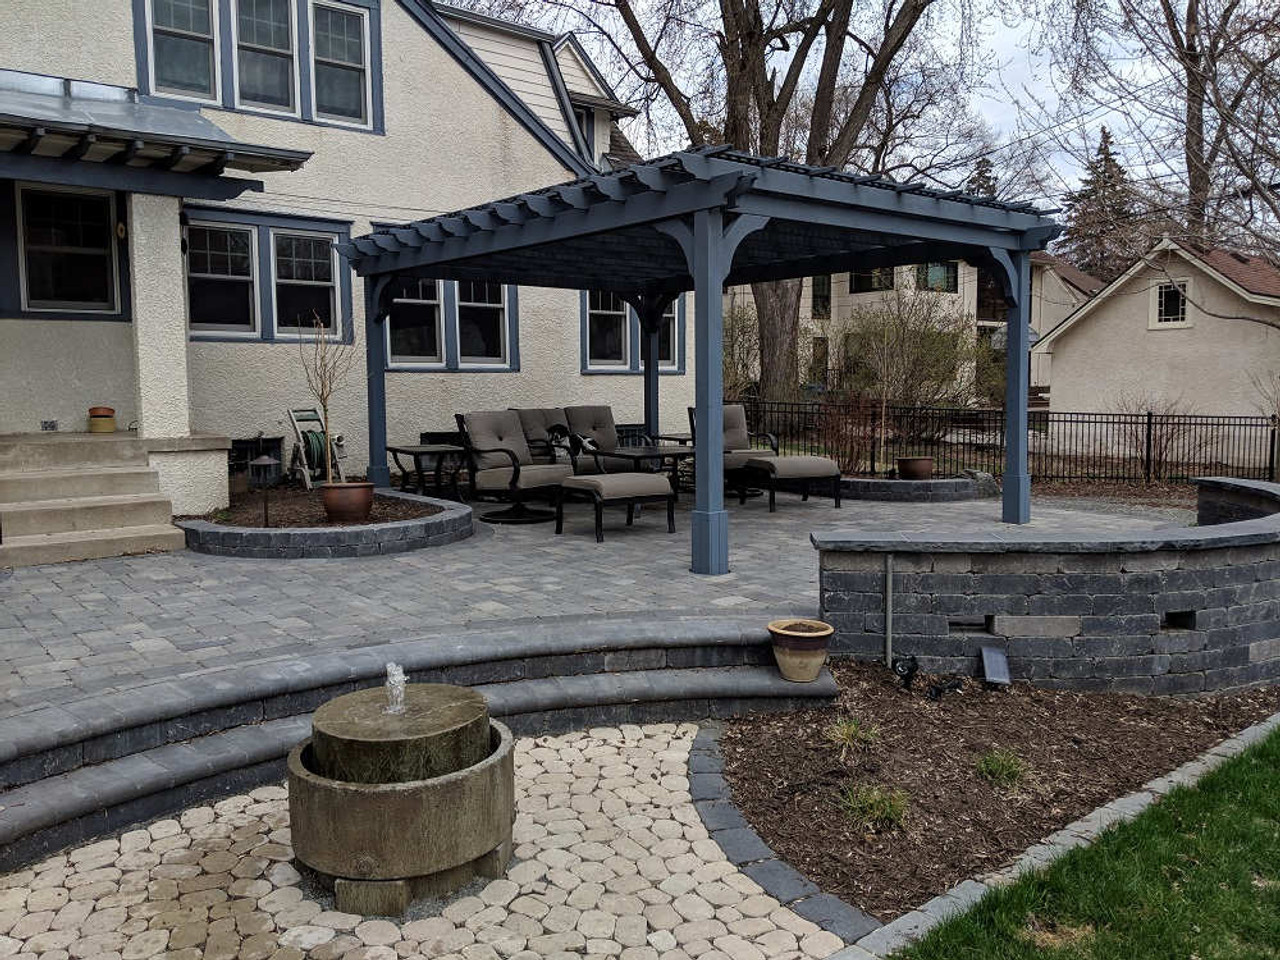 12x16 Classic Cedar Pergola Kit Minneapolis, Minnesota